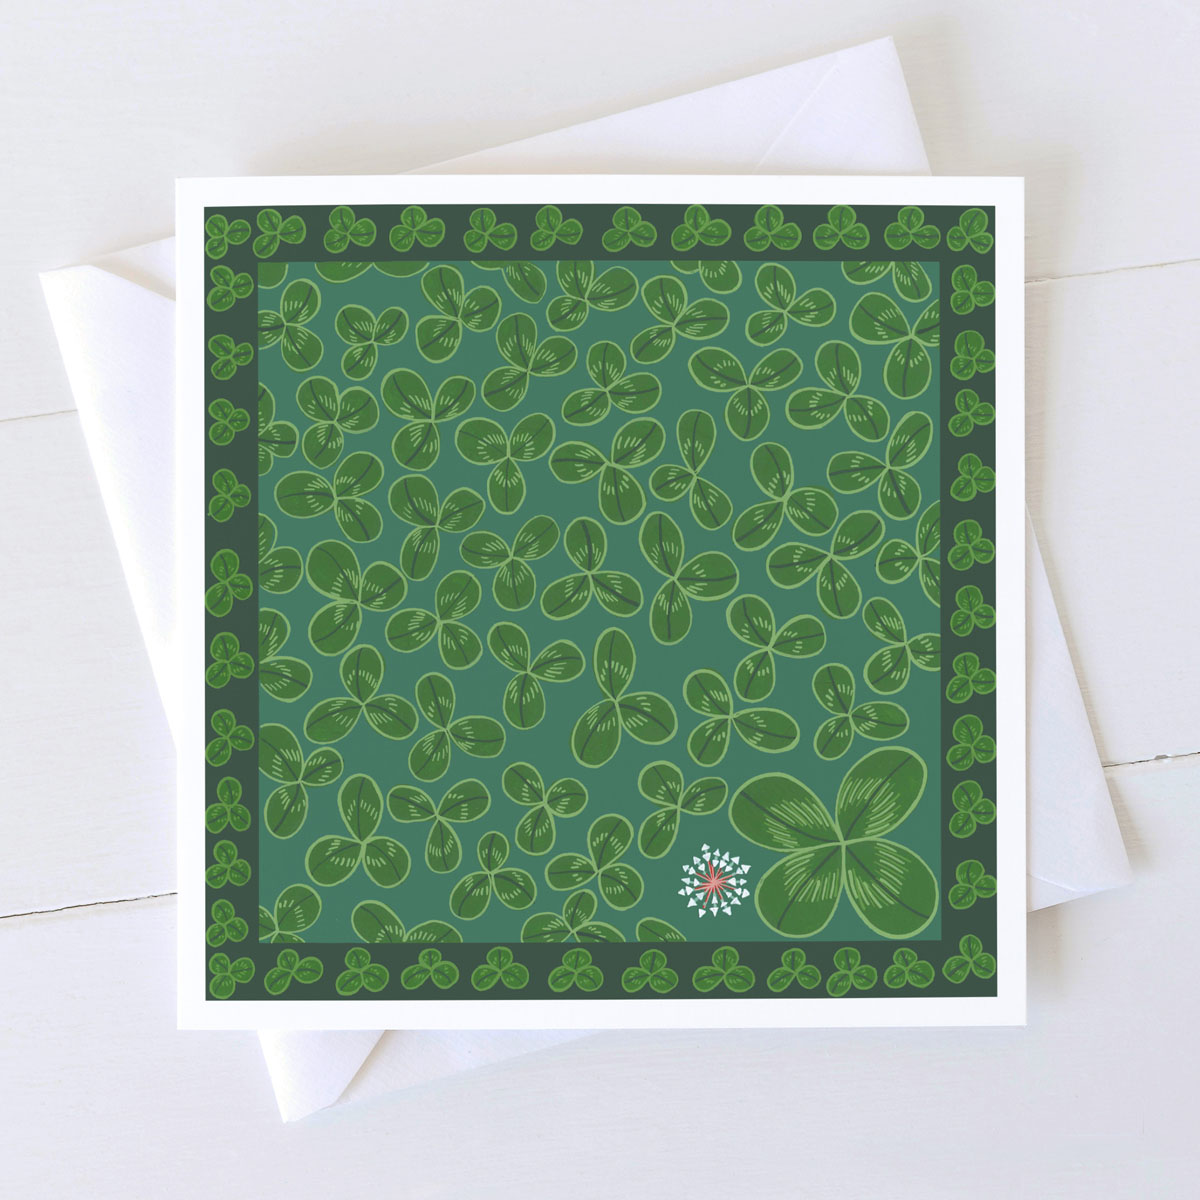 Clover Wild Flower Greeting Card